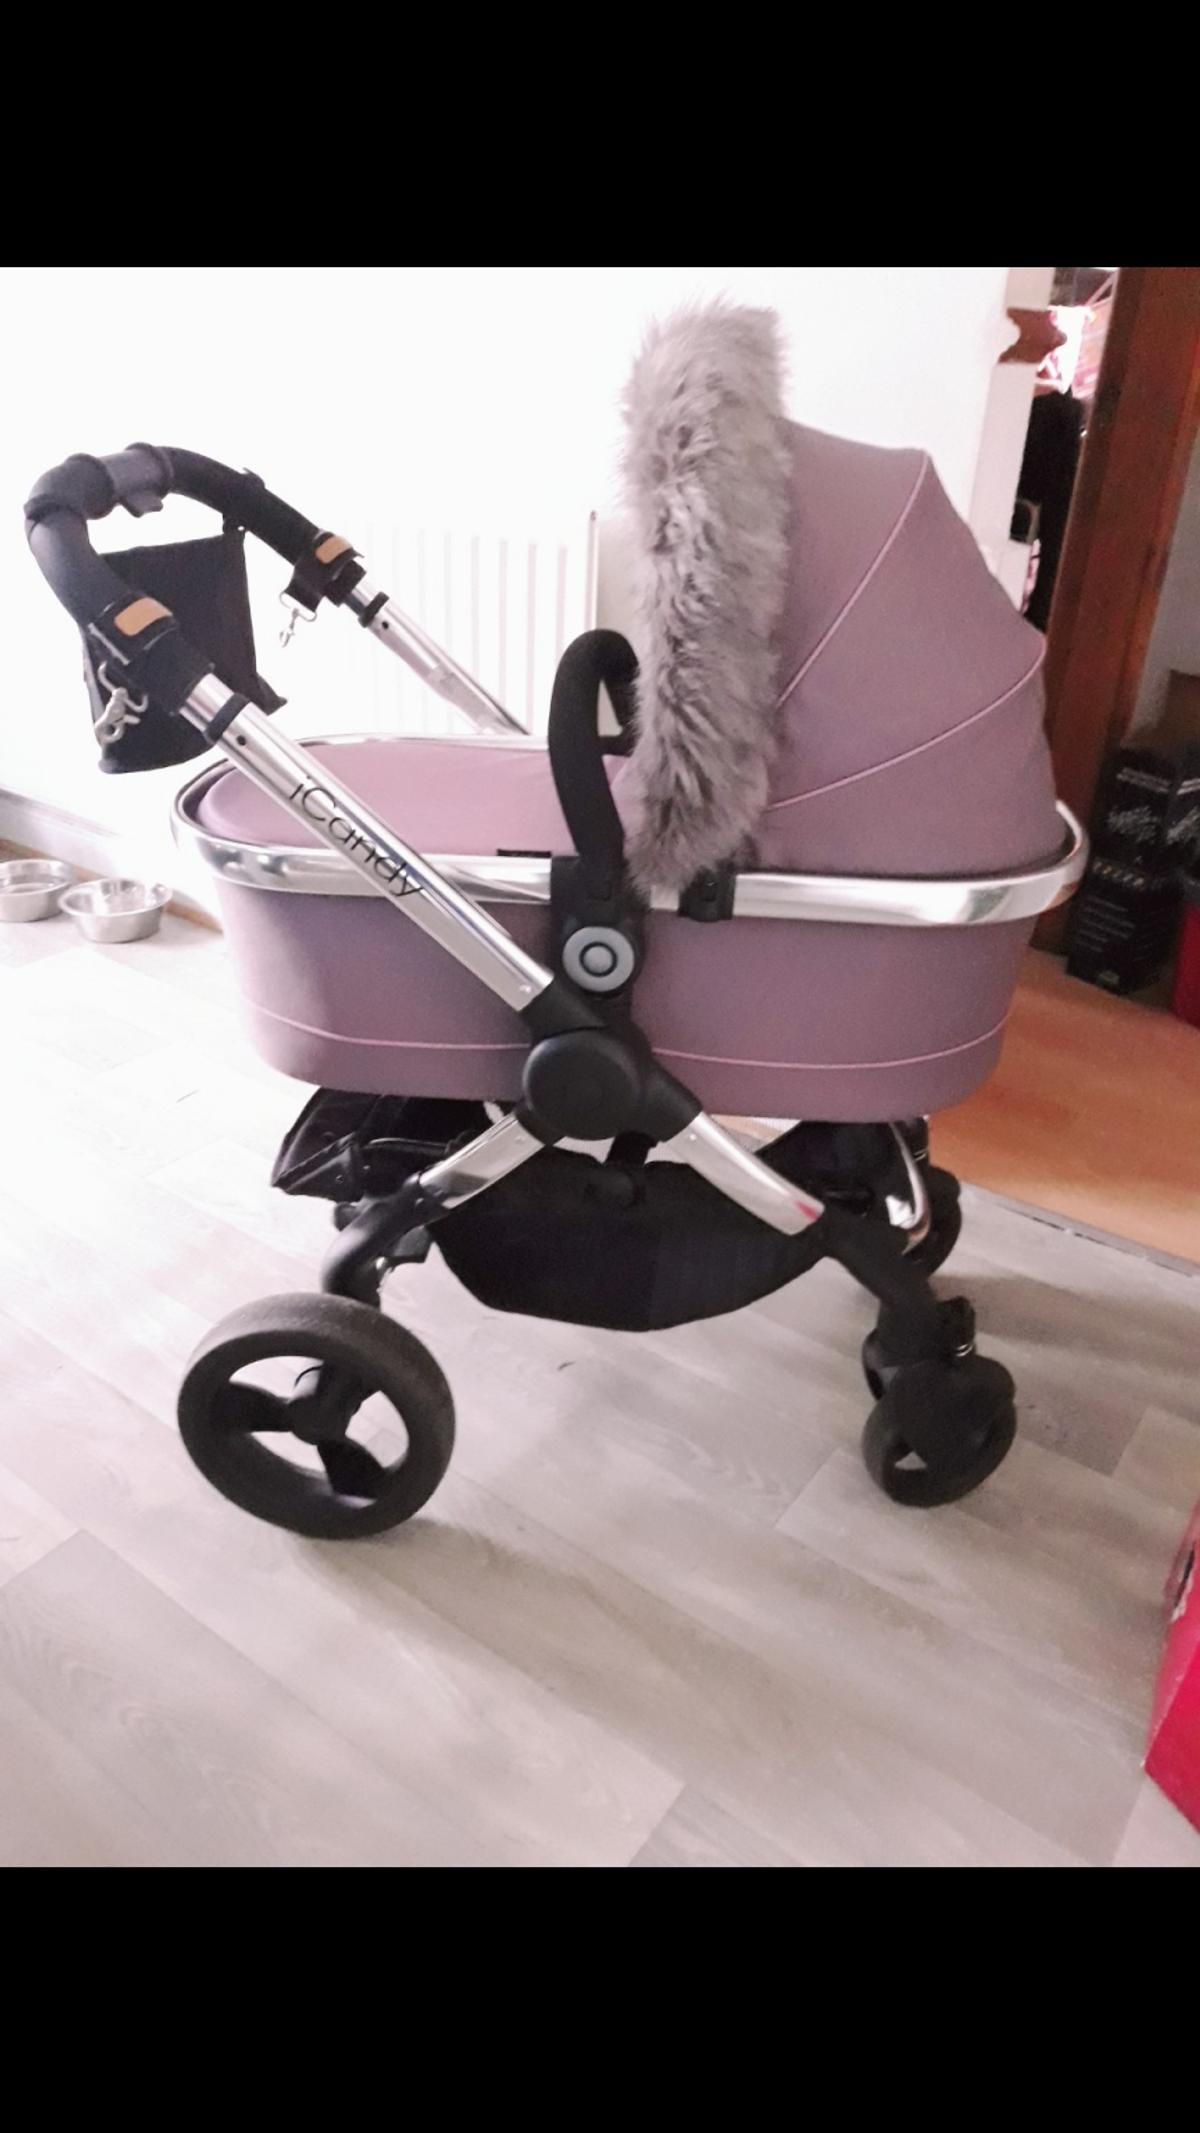 2 x iCandy Strawberry Side Arms For Strawberry Stroller Chrome Pair NEW